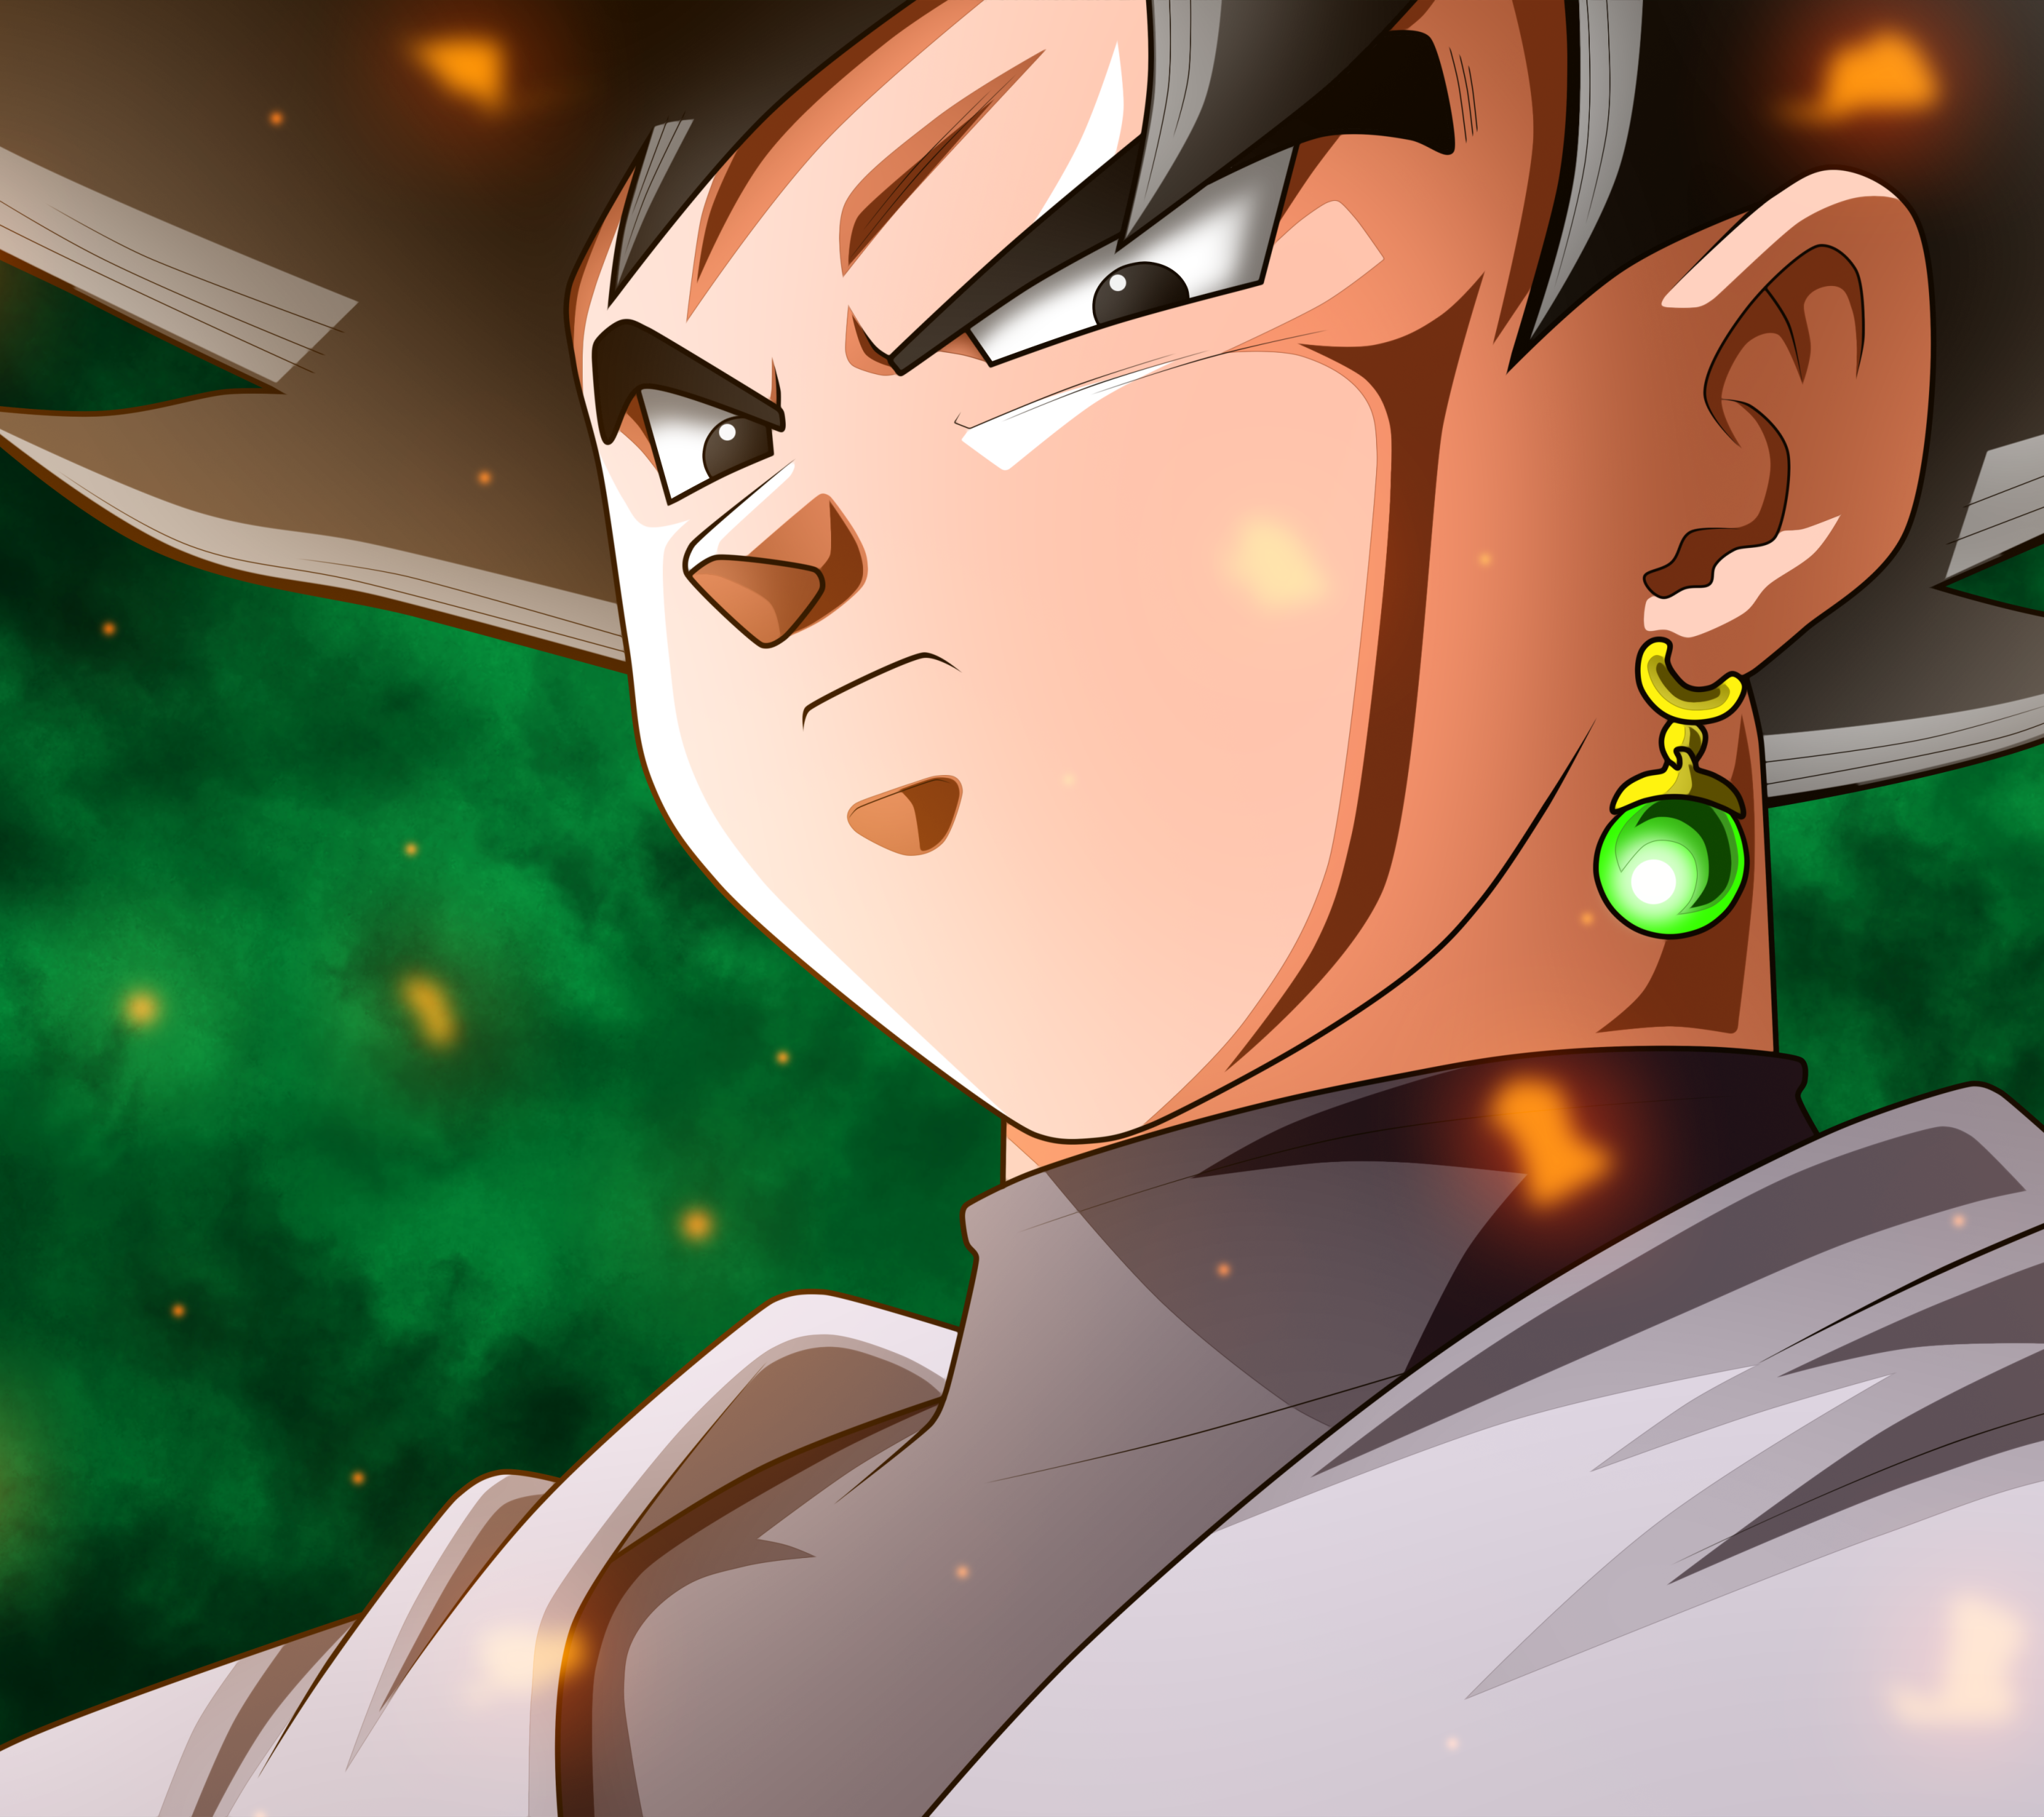 Download this Wallpaper Anime/Dragon Ball Super (2880x2560